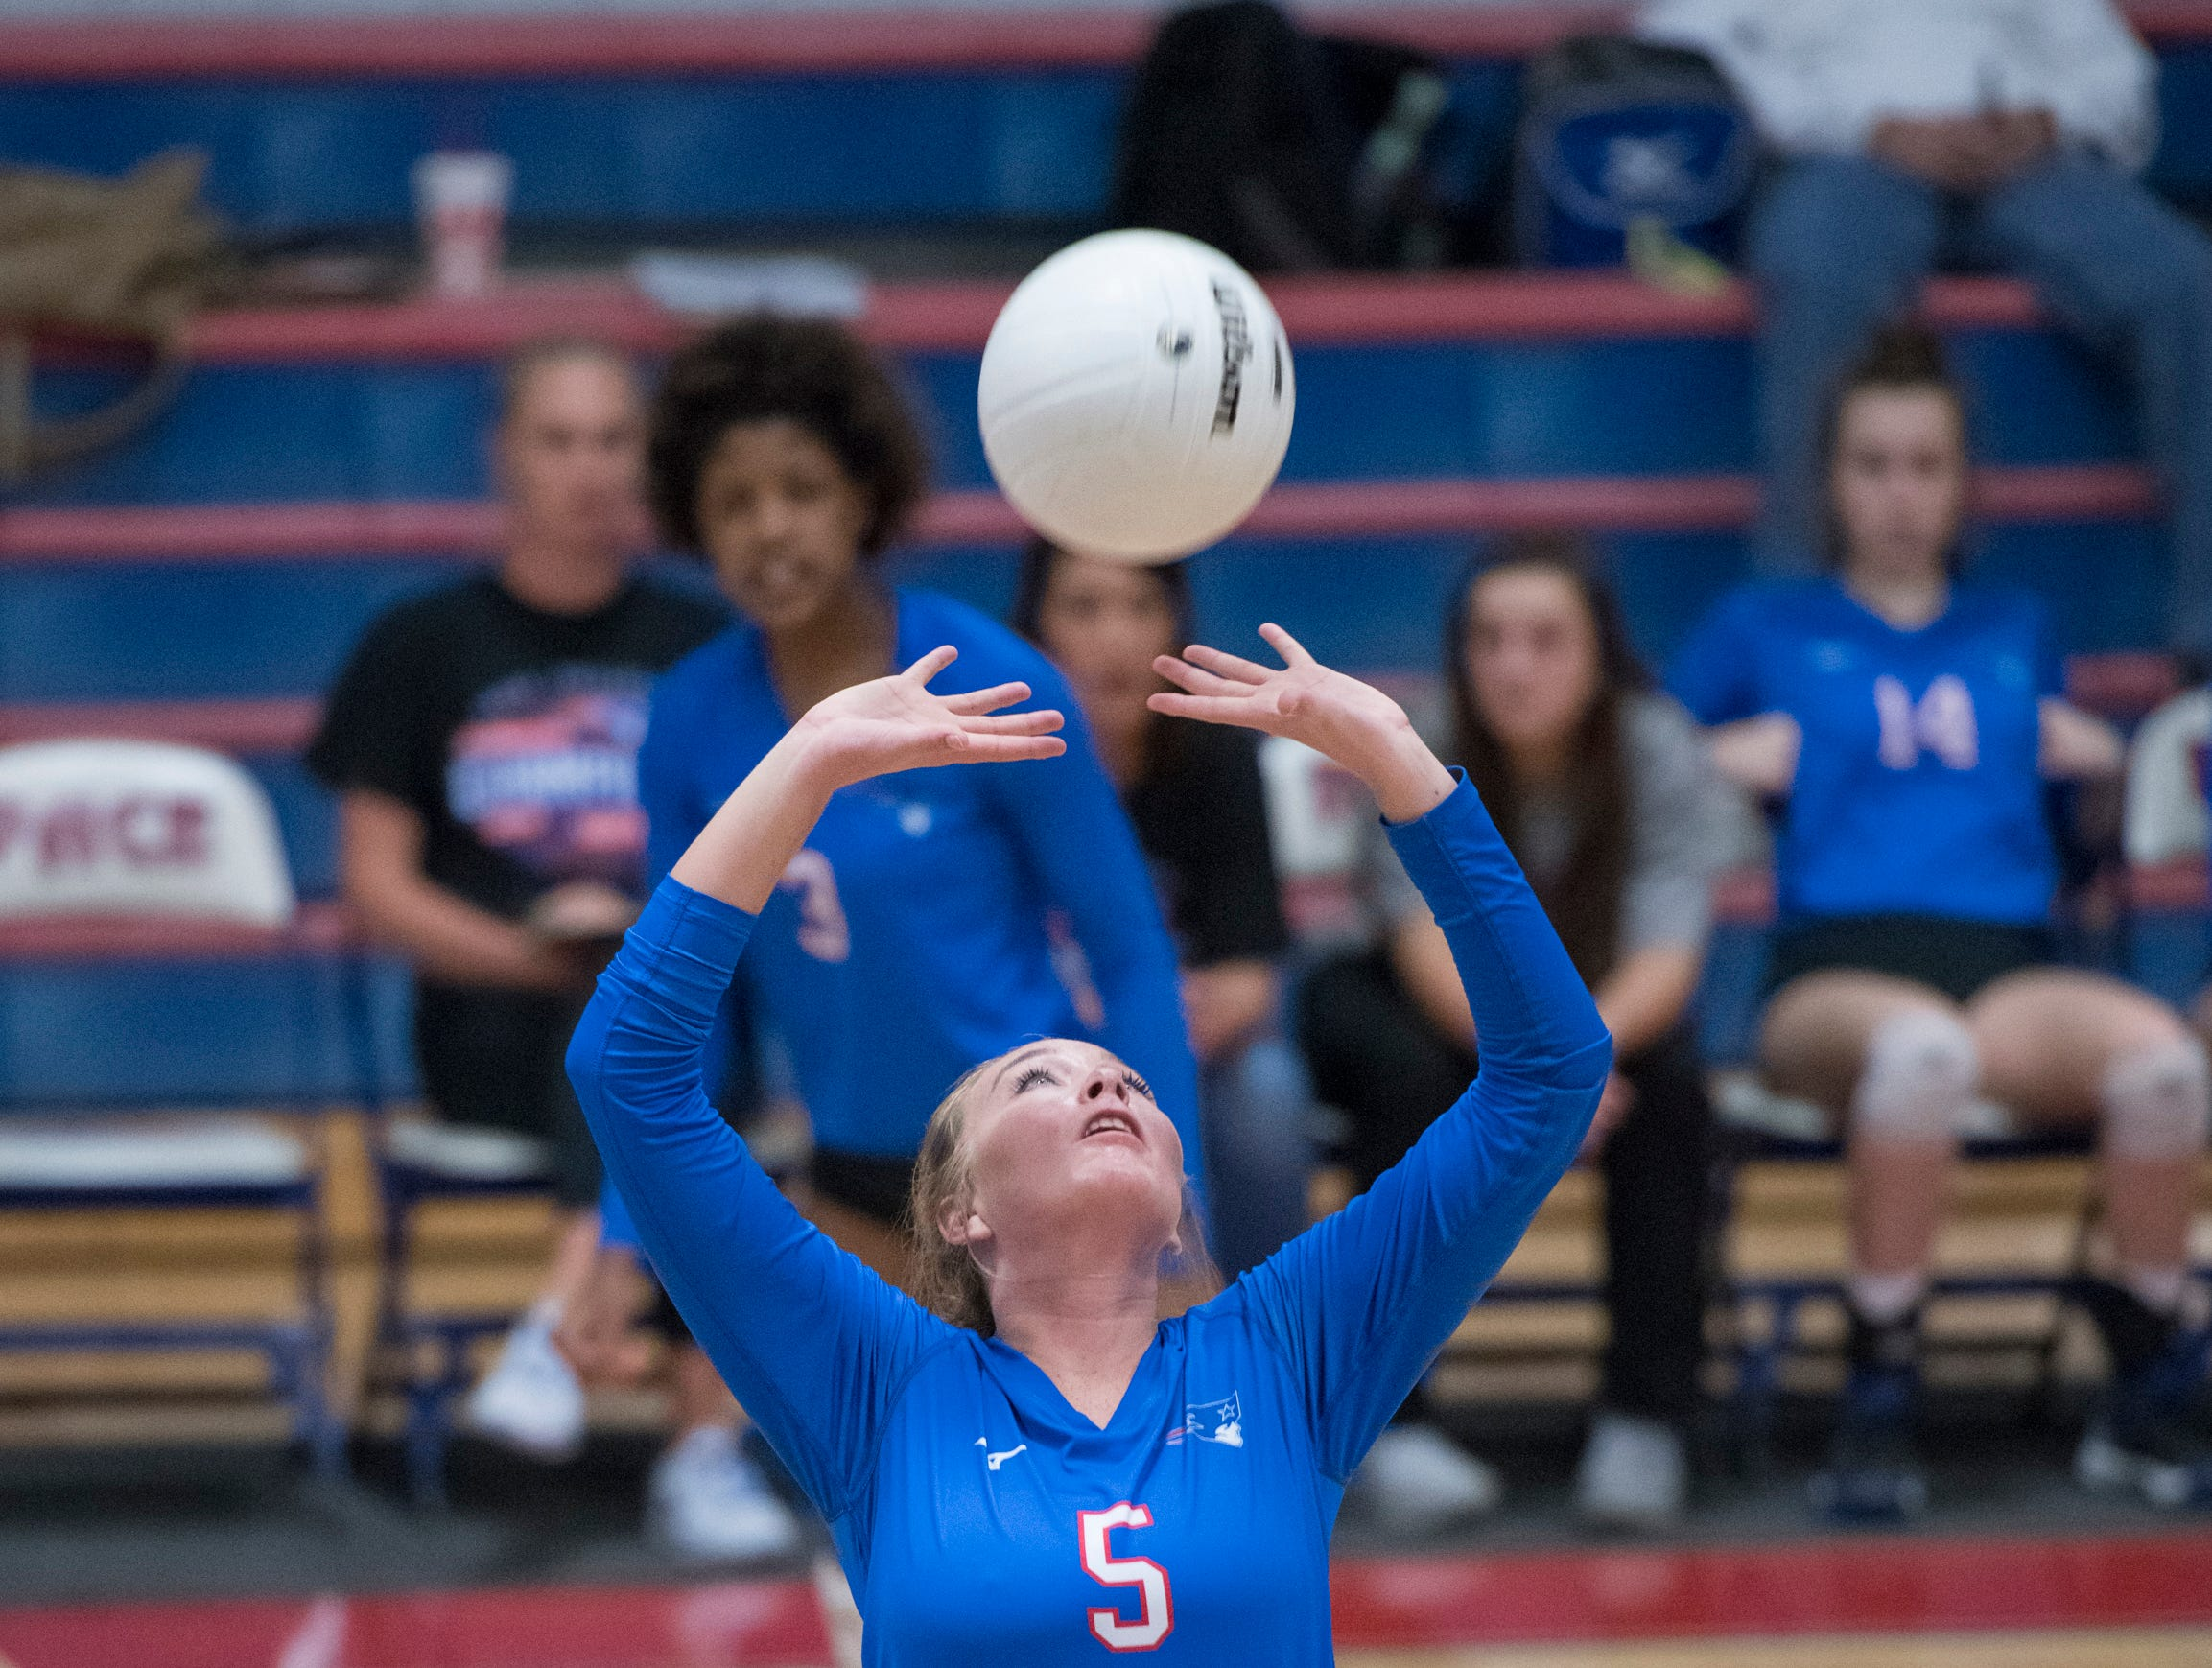 Grace McCammon (5) sets the ball during the regional volleyball game between Fort Walton Beach and Pace at Pace High School on Wednesday, October 24, 2018.